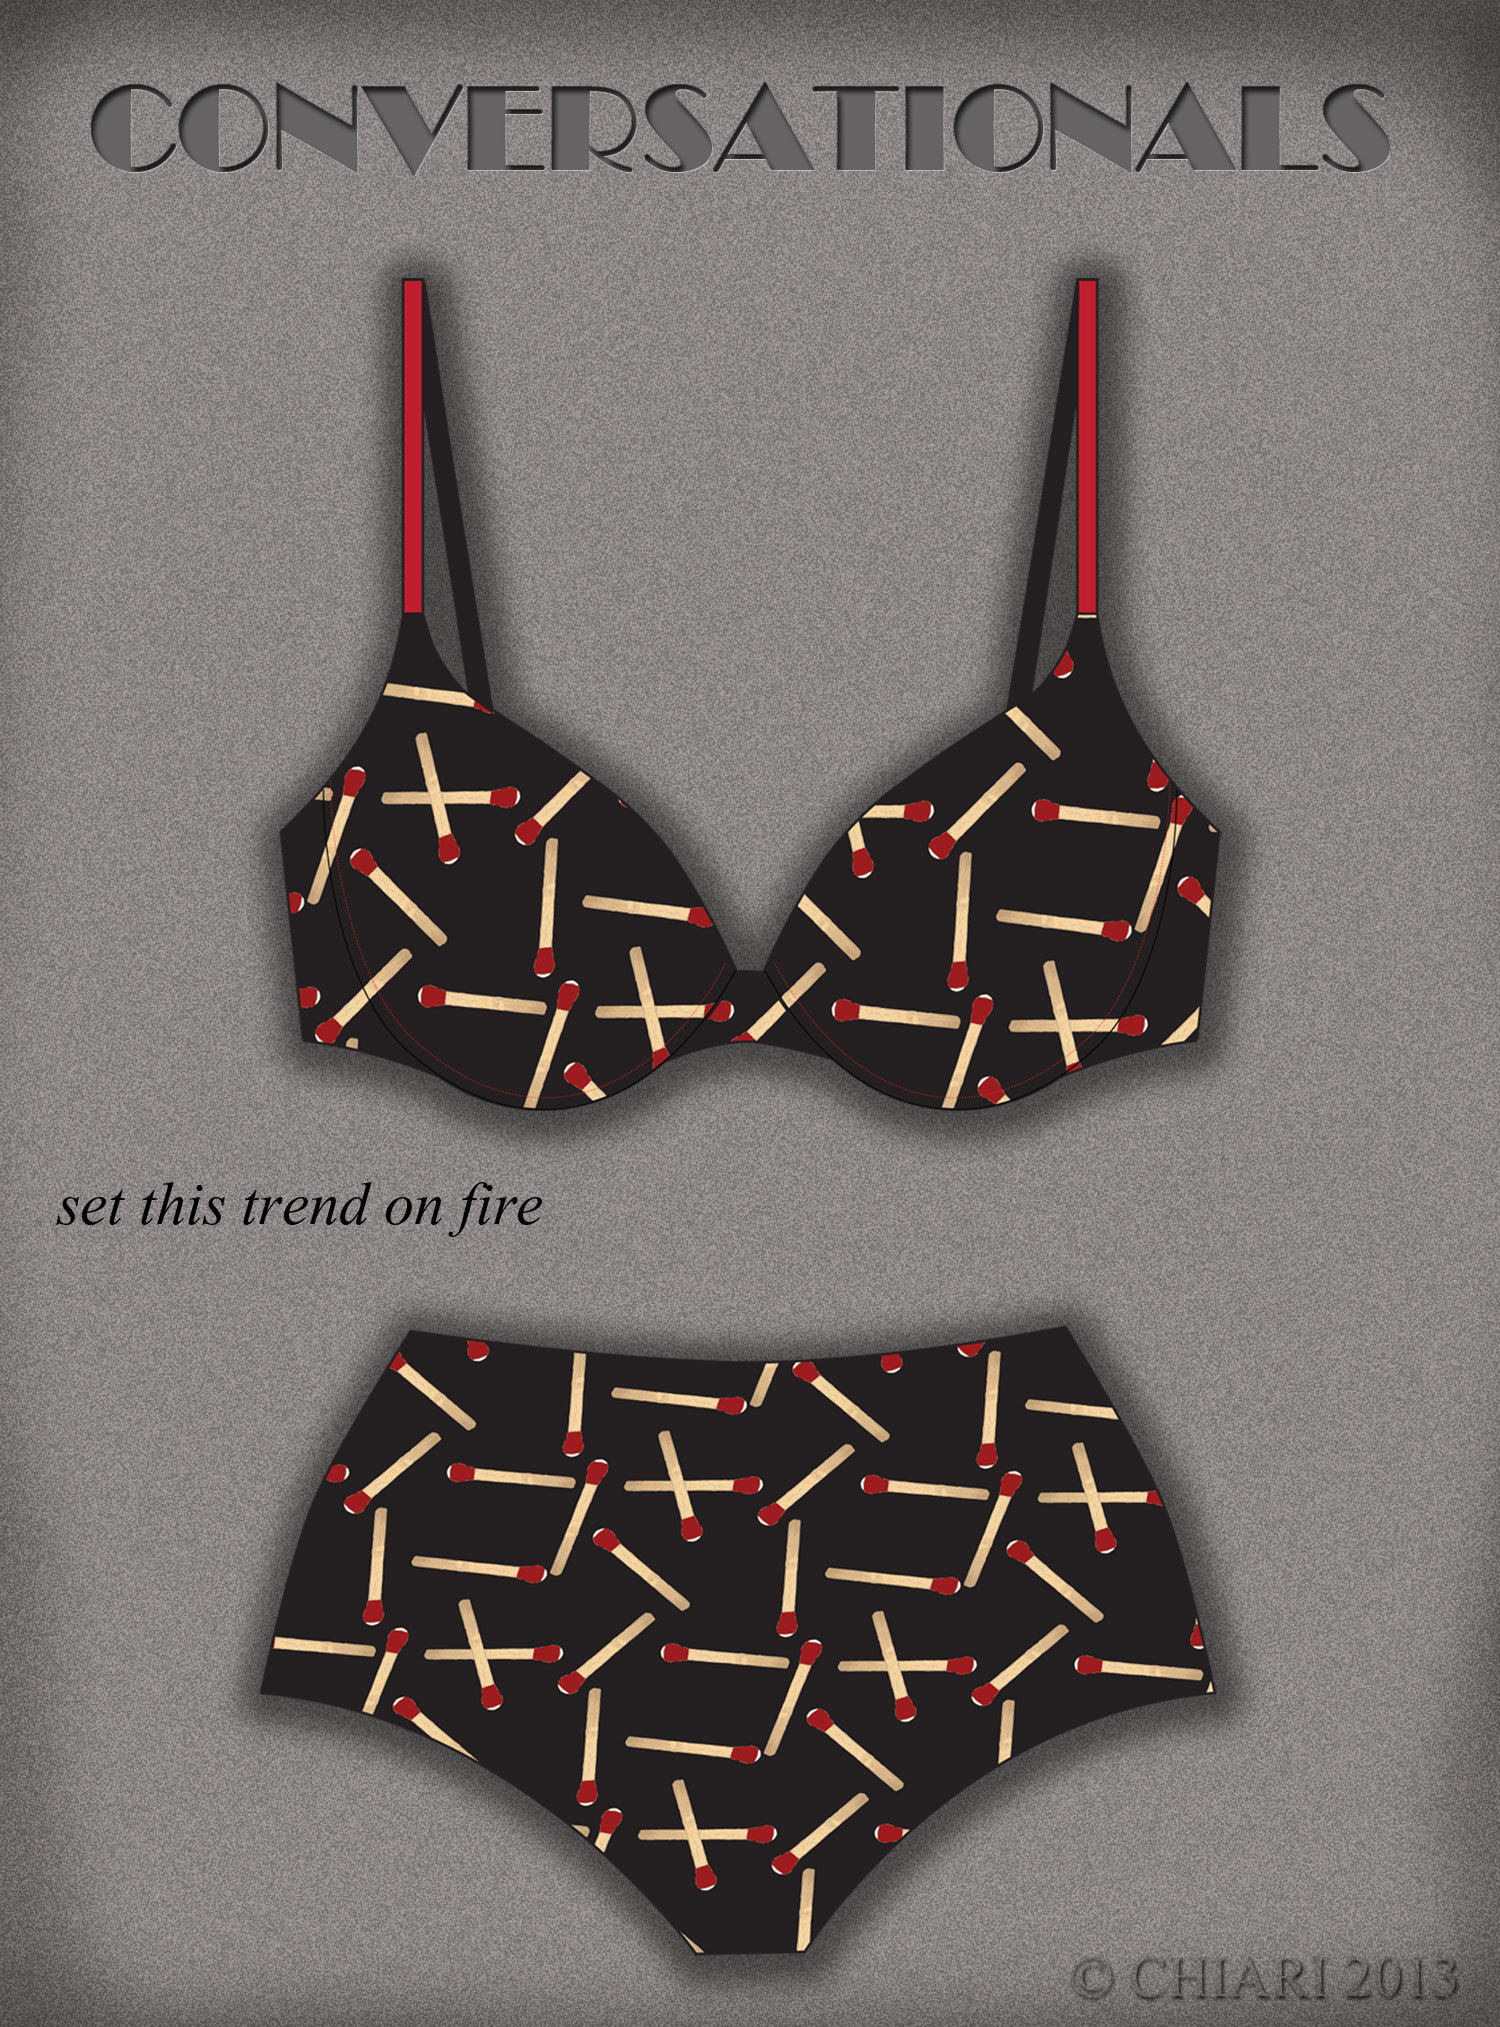 CHIARIstyle:Matchstick Product Development print idea-Spring Summer 2014 Trends for Intimates, Lingerie & Loungewear